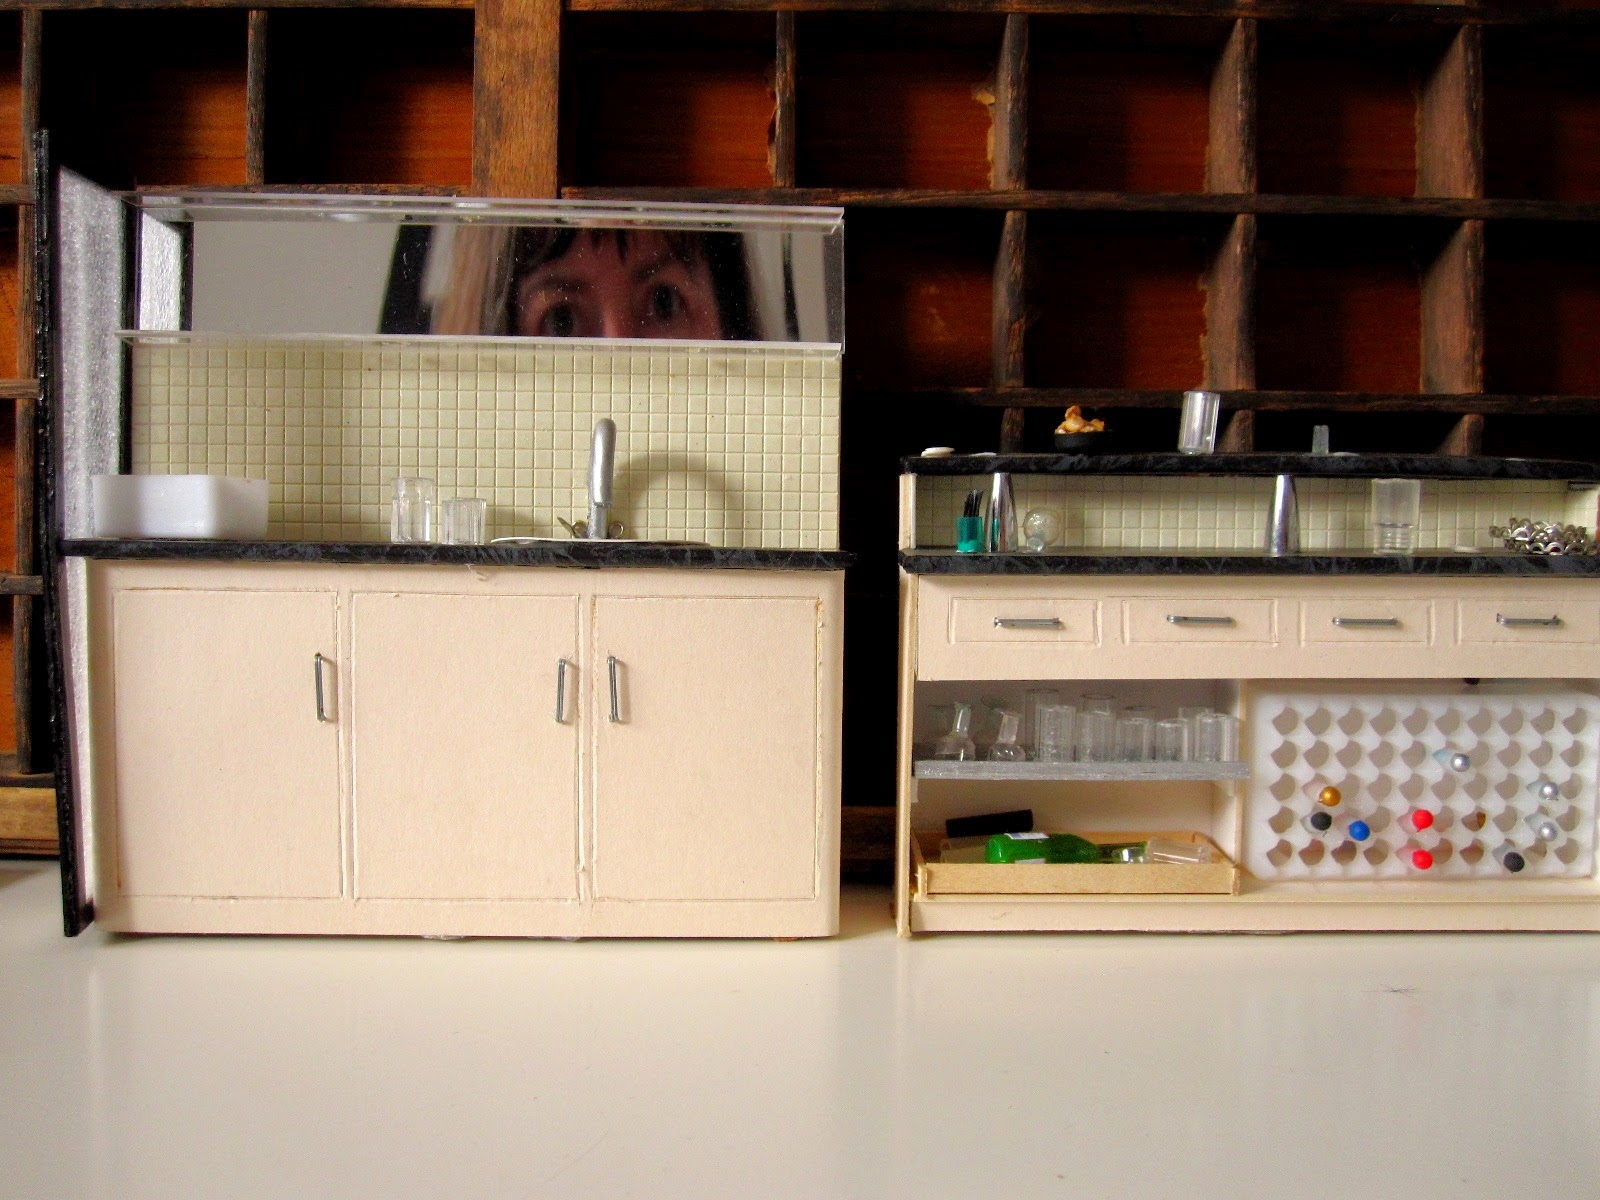 Modern miniature pub counter and sink unit.